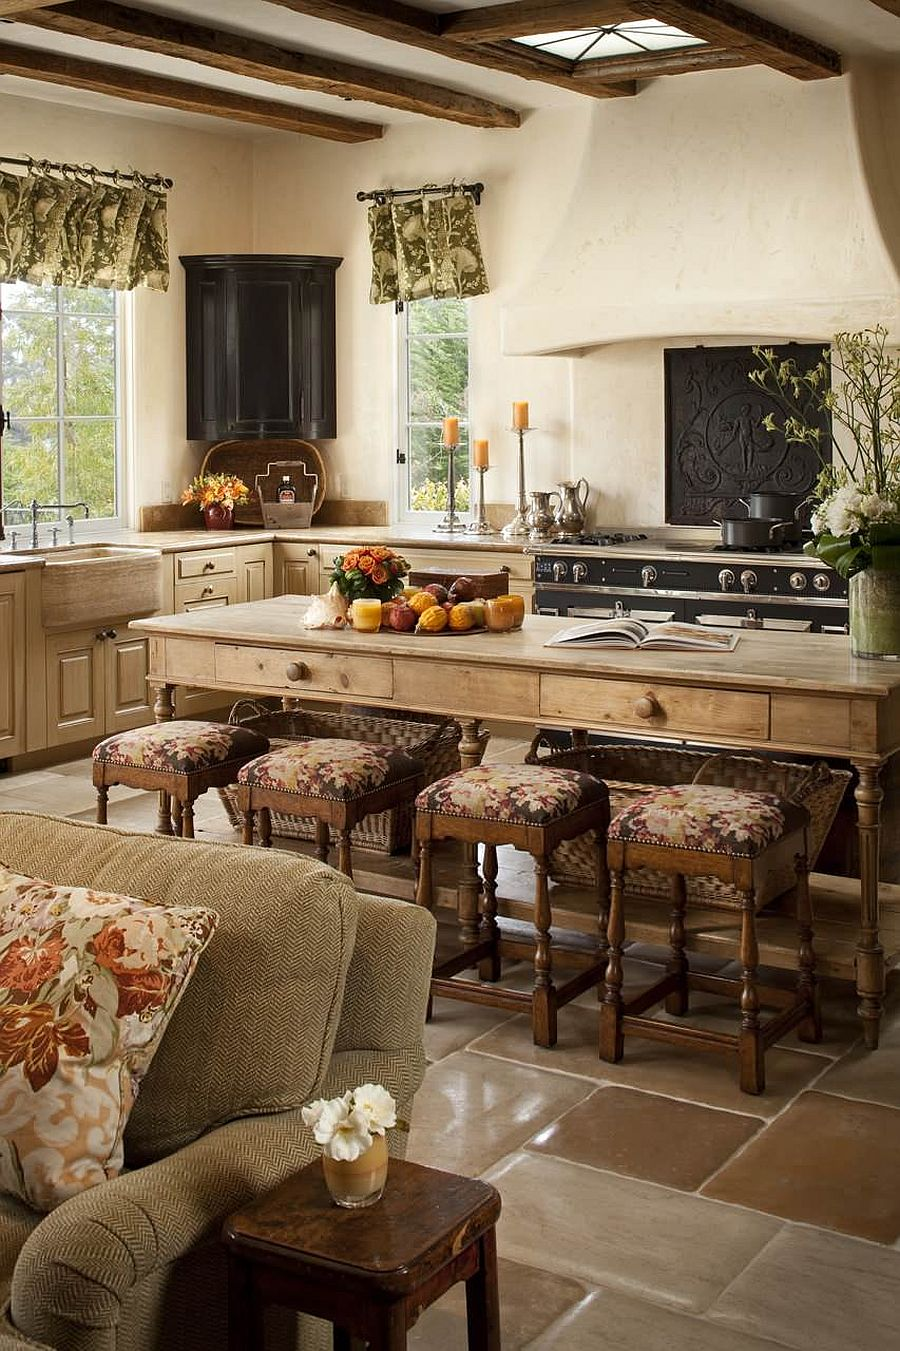 Kitchen-island-made-from-wood-that-is-same-as-the-one-used-for-the-cabinets-in-this-Mediterranean-home